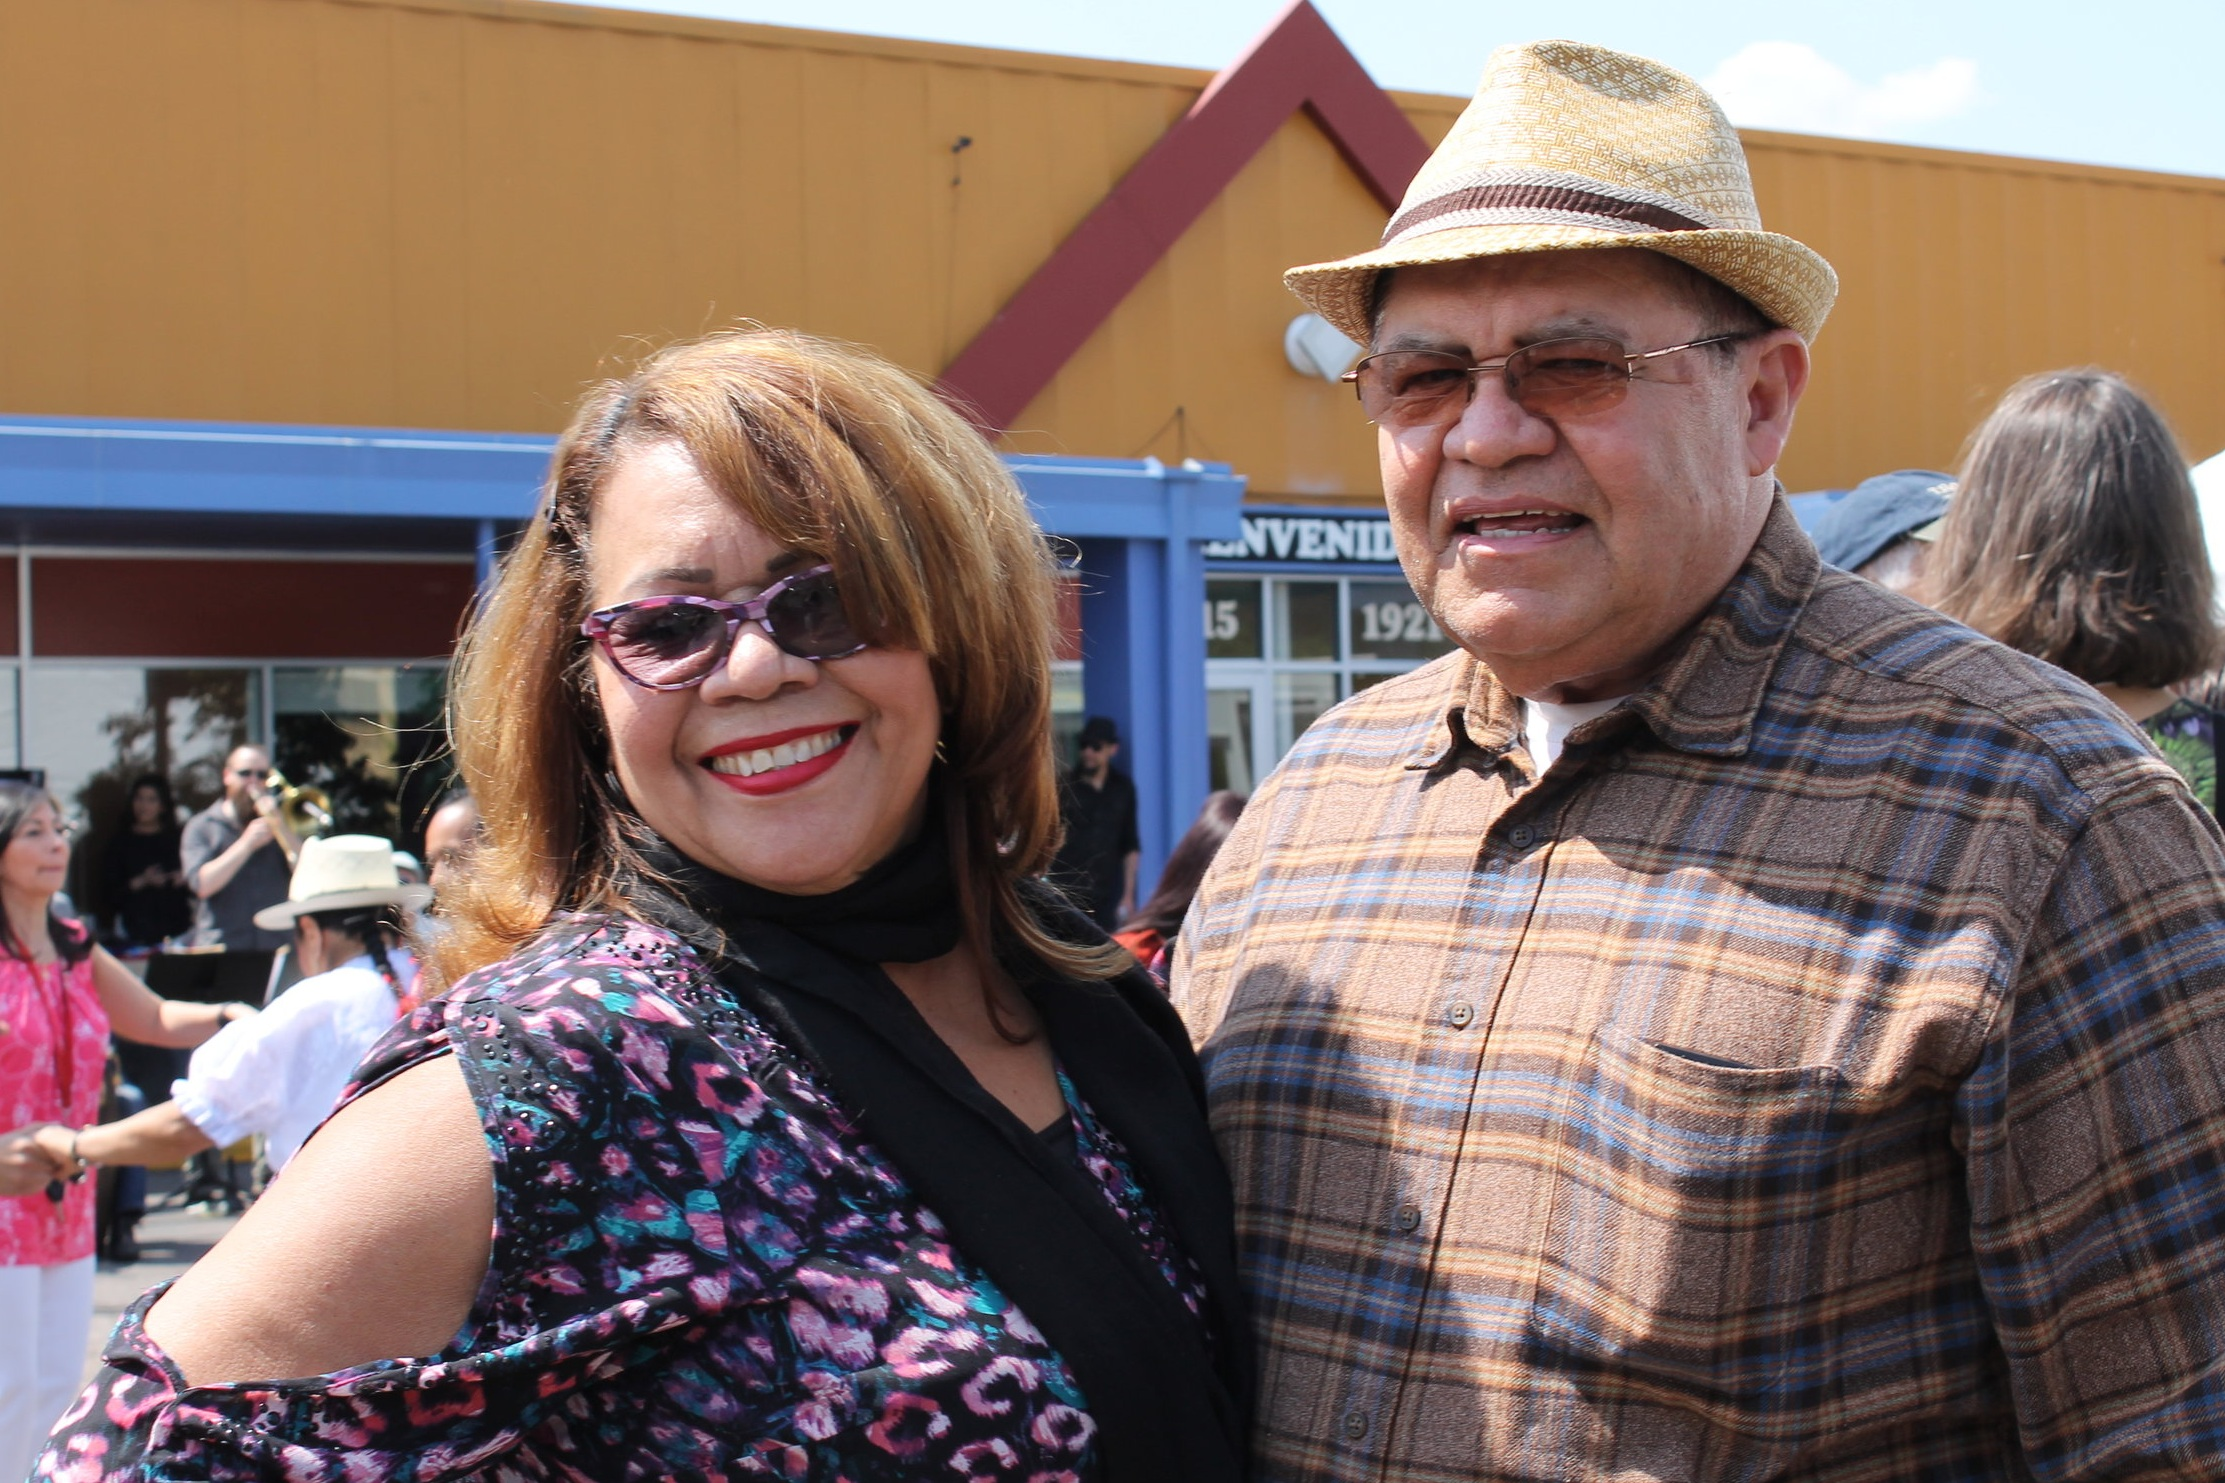 Photo caption: Wise Elders celebrating The Day of the Family at Centro Tyrone Guzman.